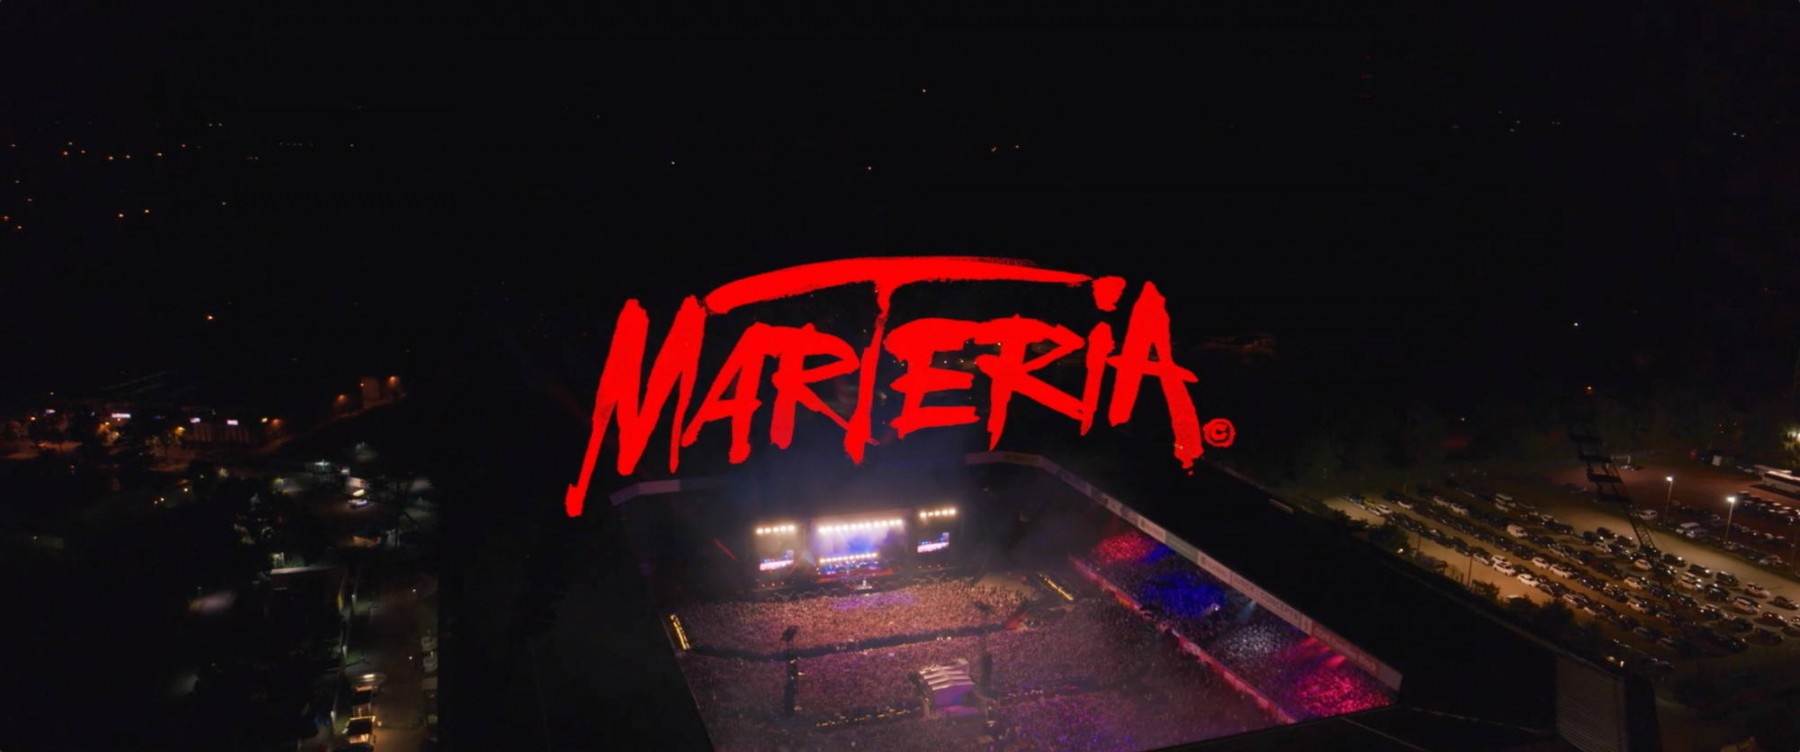 Concept of Photography, Editor for MARTERIA - LIVE IM OSTSEESTADION by KRISTIAN SICKINGER represented by stoever artists